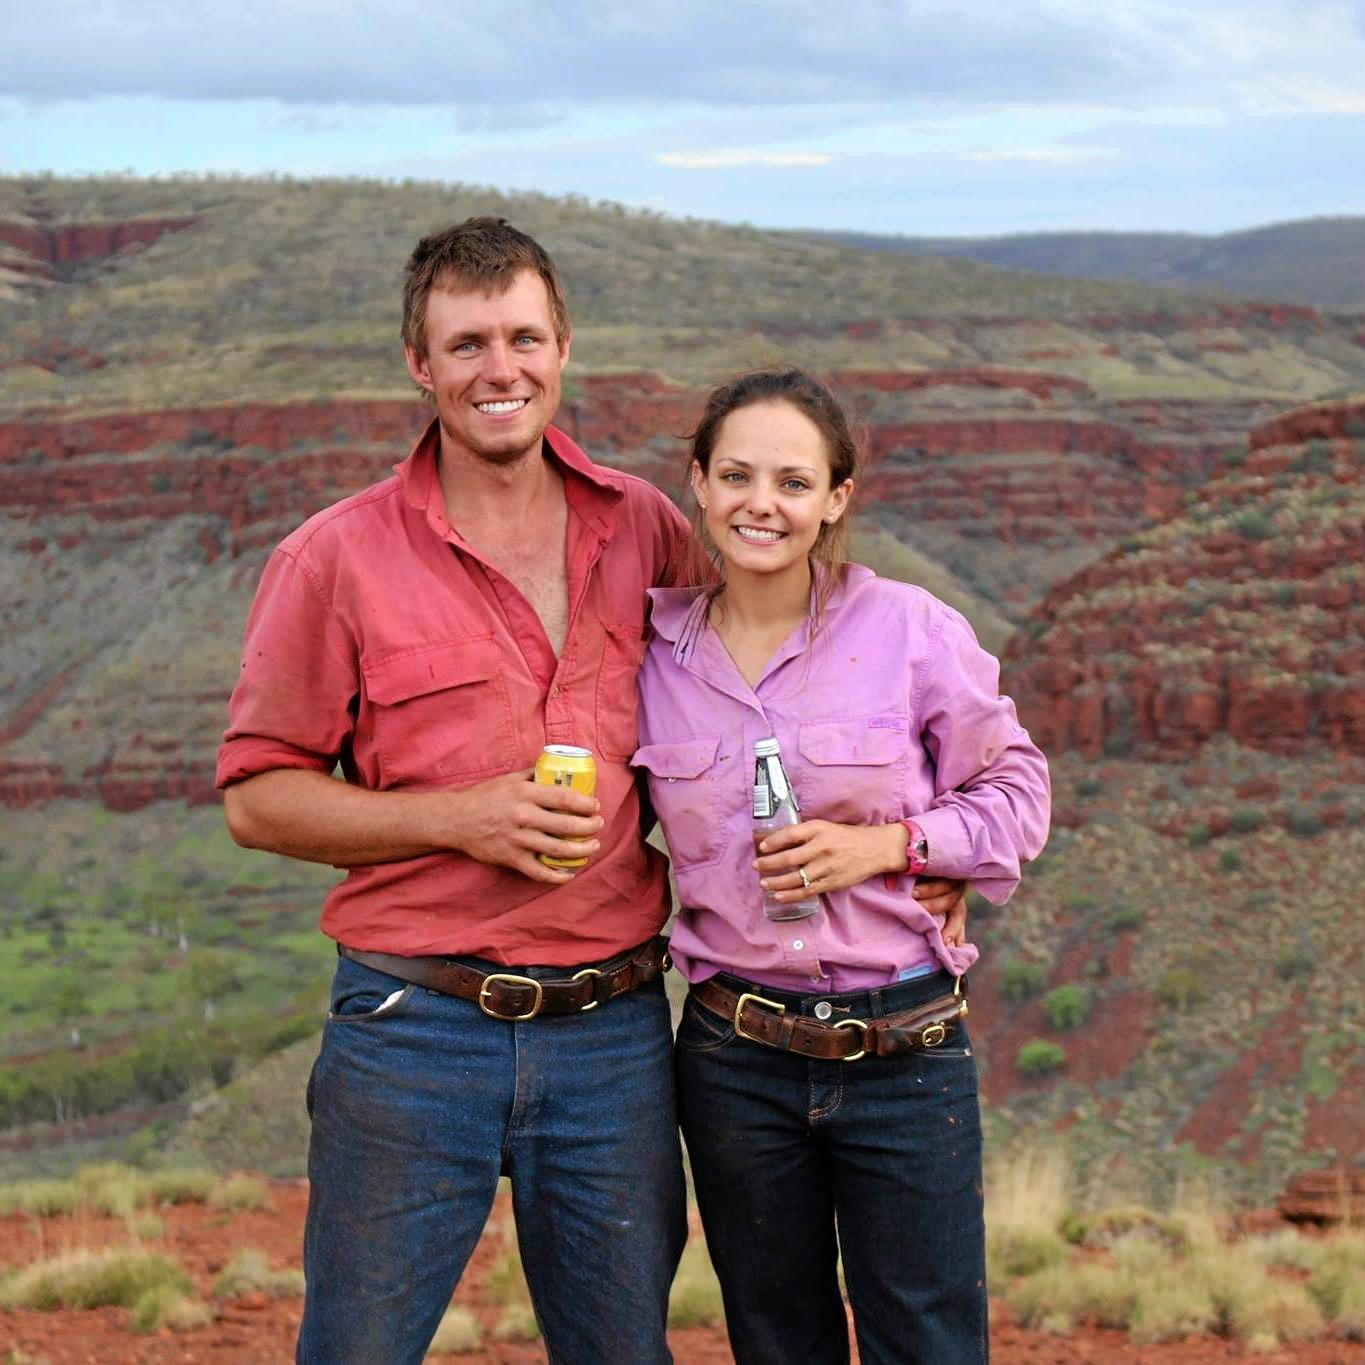 Andrew Briggs and Carissa Gleeson are working together to help treat Carissa's cancer with alternative medicines.